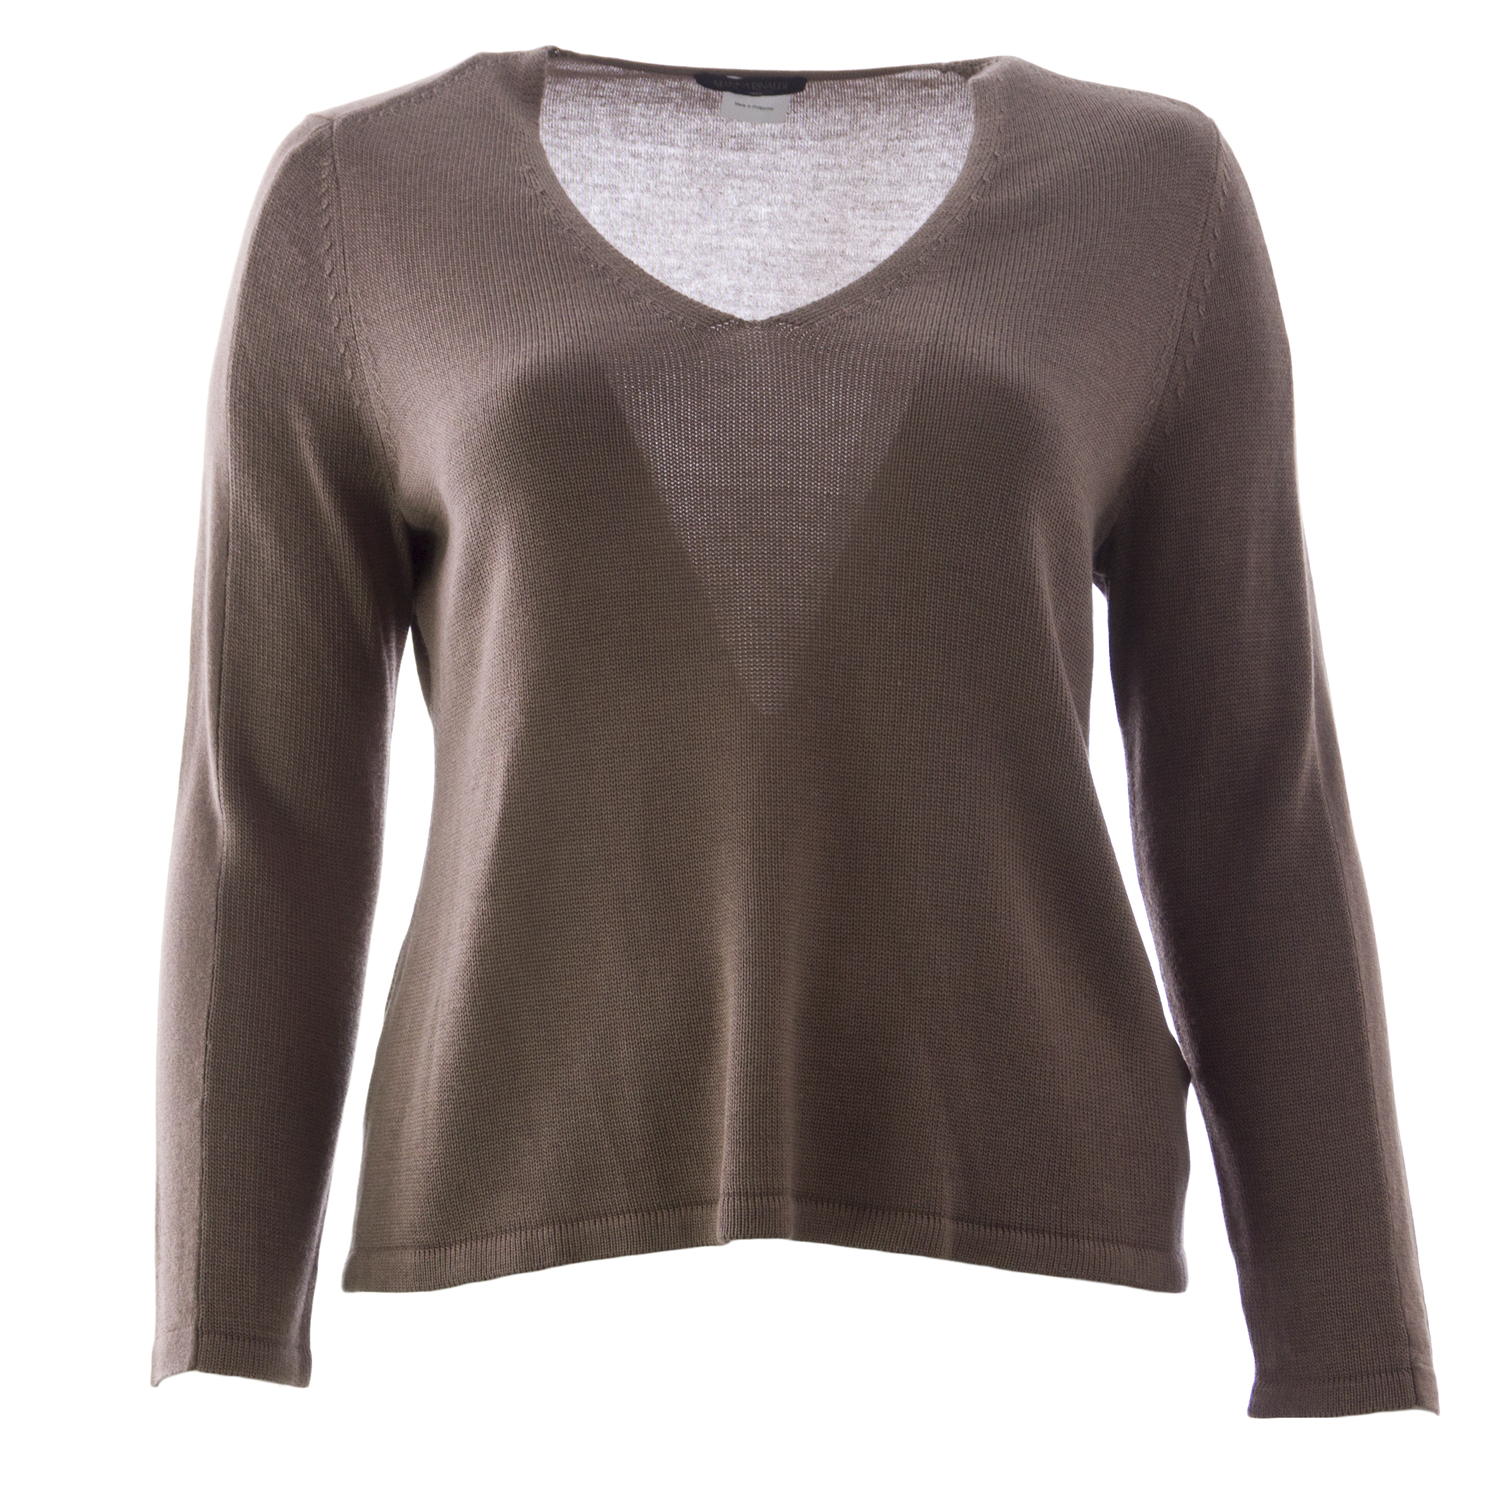 Marina Rinaldi Women's Alias V-neck Sweater Medium Brown | eBay